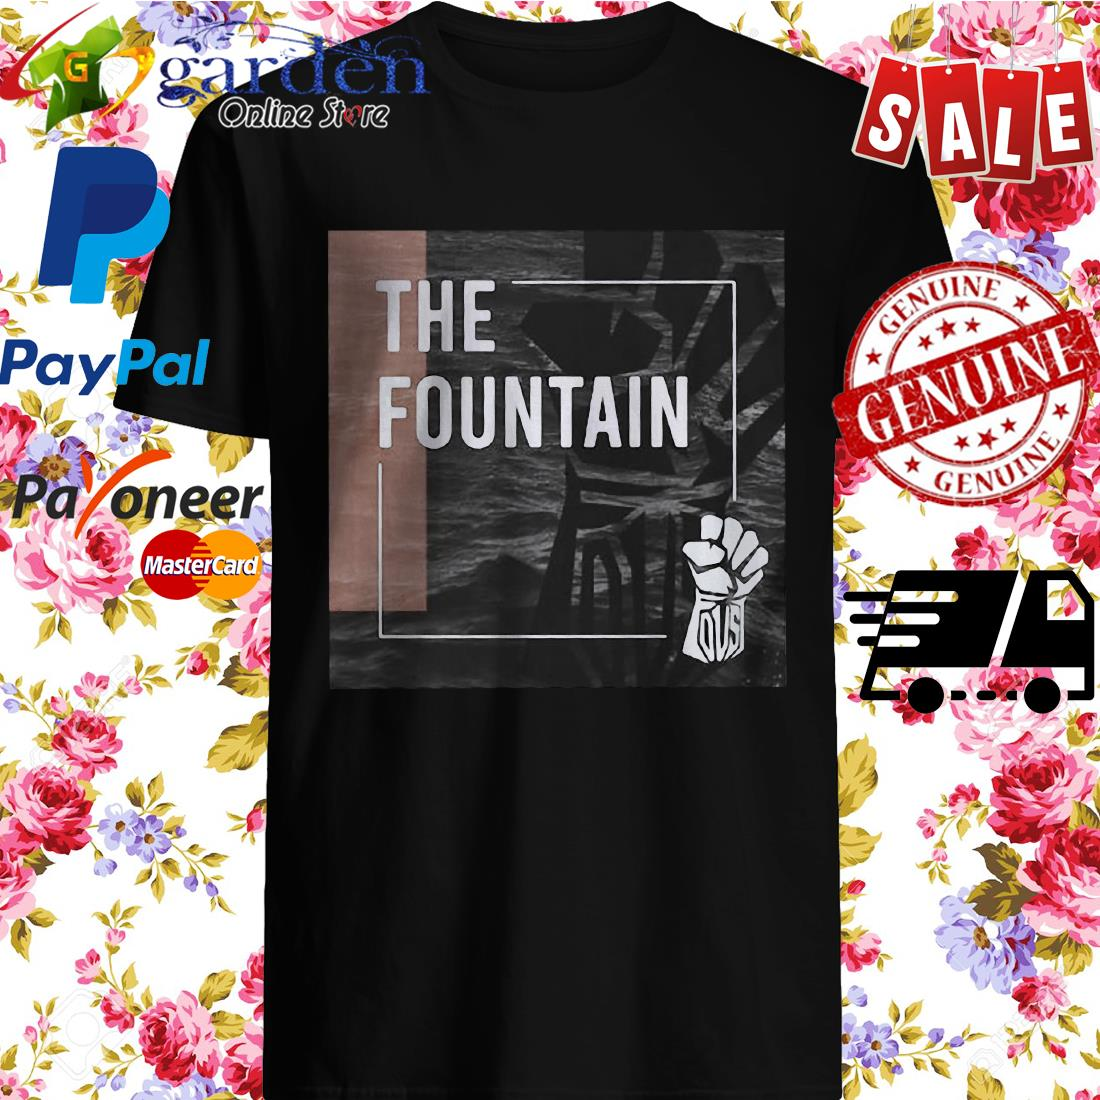 The Fountain Movie Shirt